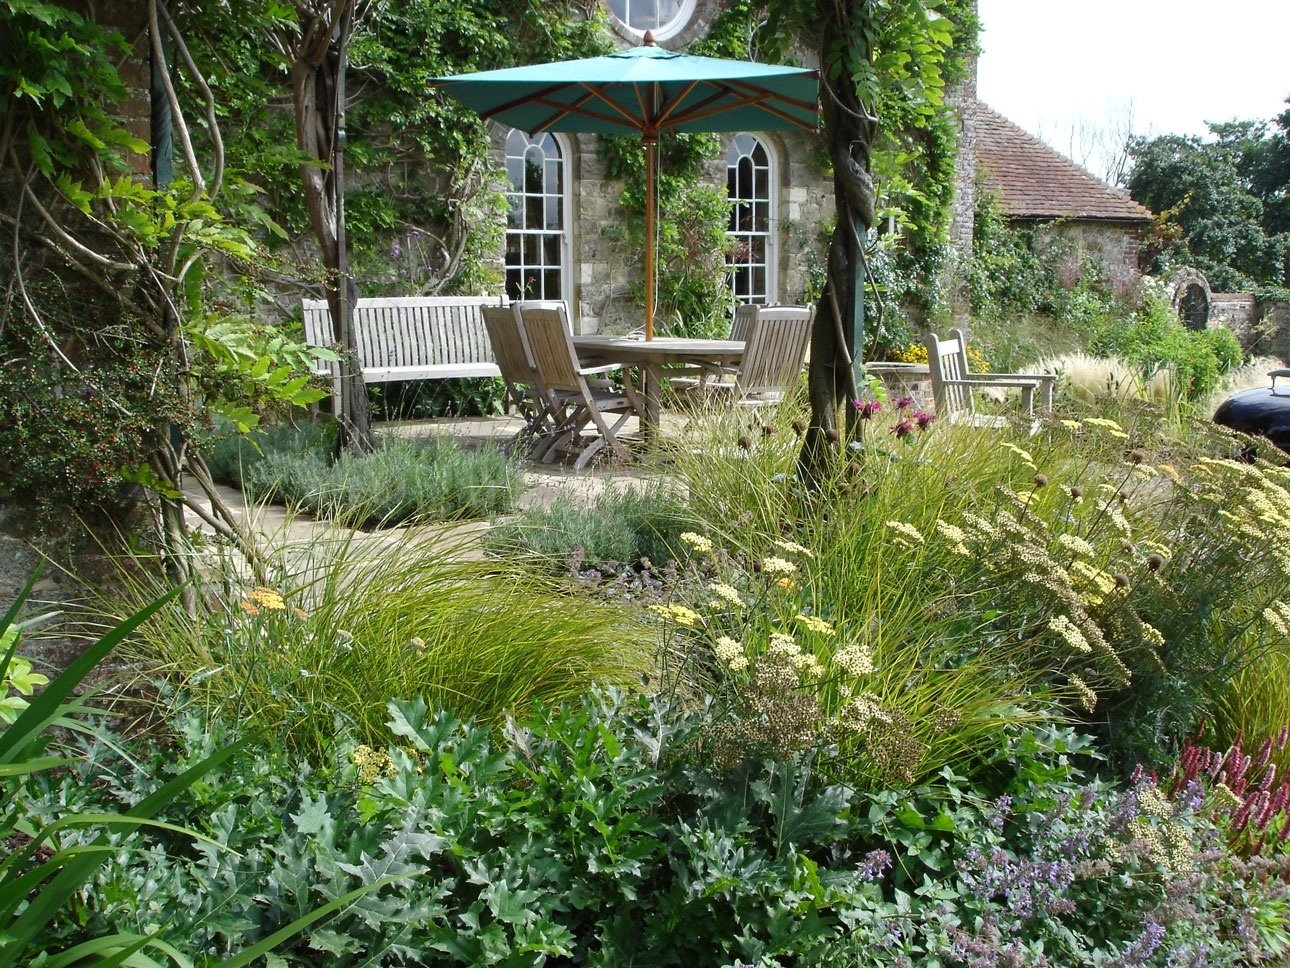 New paved terrace garden design for Grade II listed house in West Sussex by Ann-Marie Powell Gardens